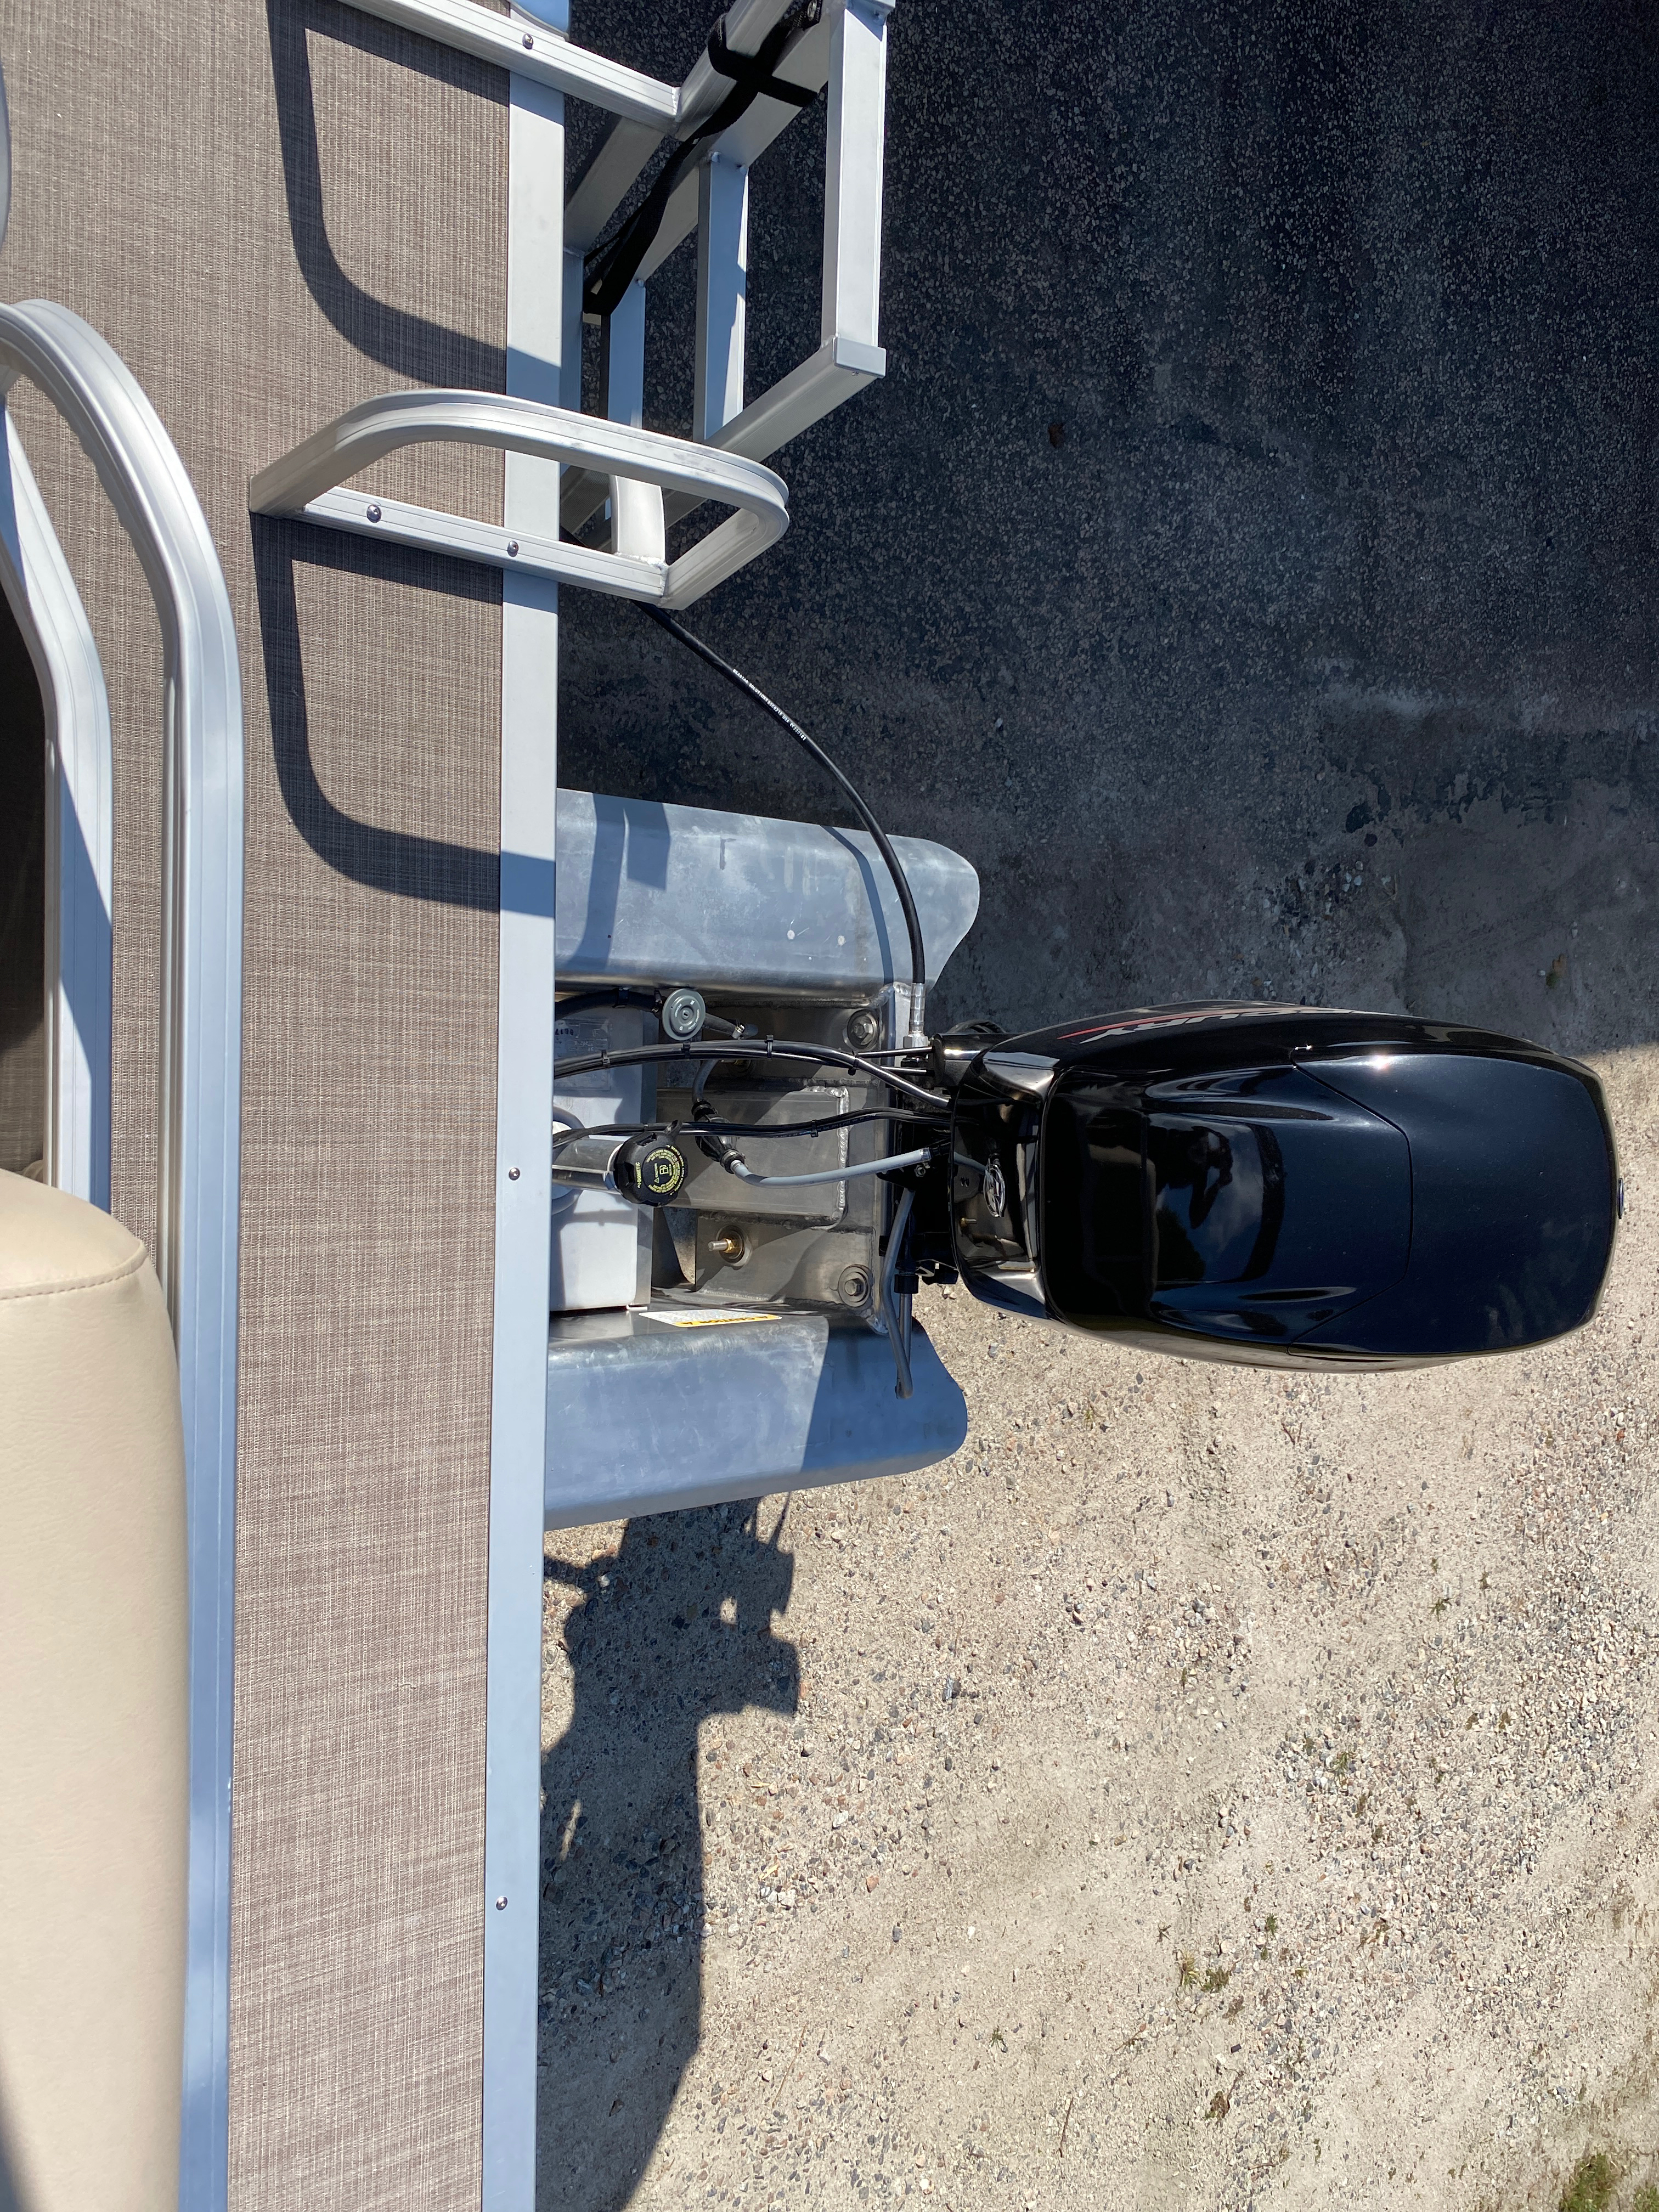 2021 Sun Tracker boat for sale, model of the boat is Party Barge 18 w/60ELPT 4S CT & Image # 40 of 50